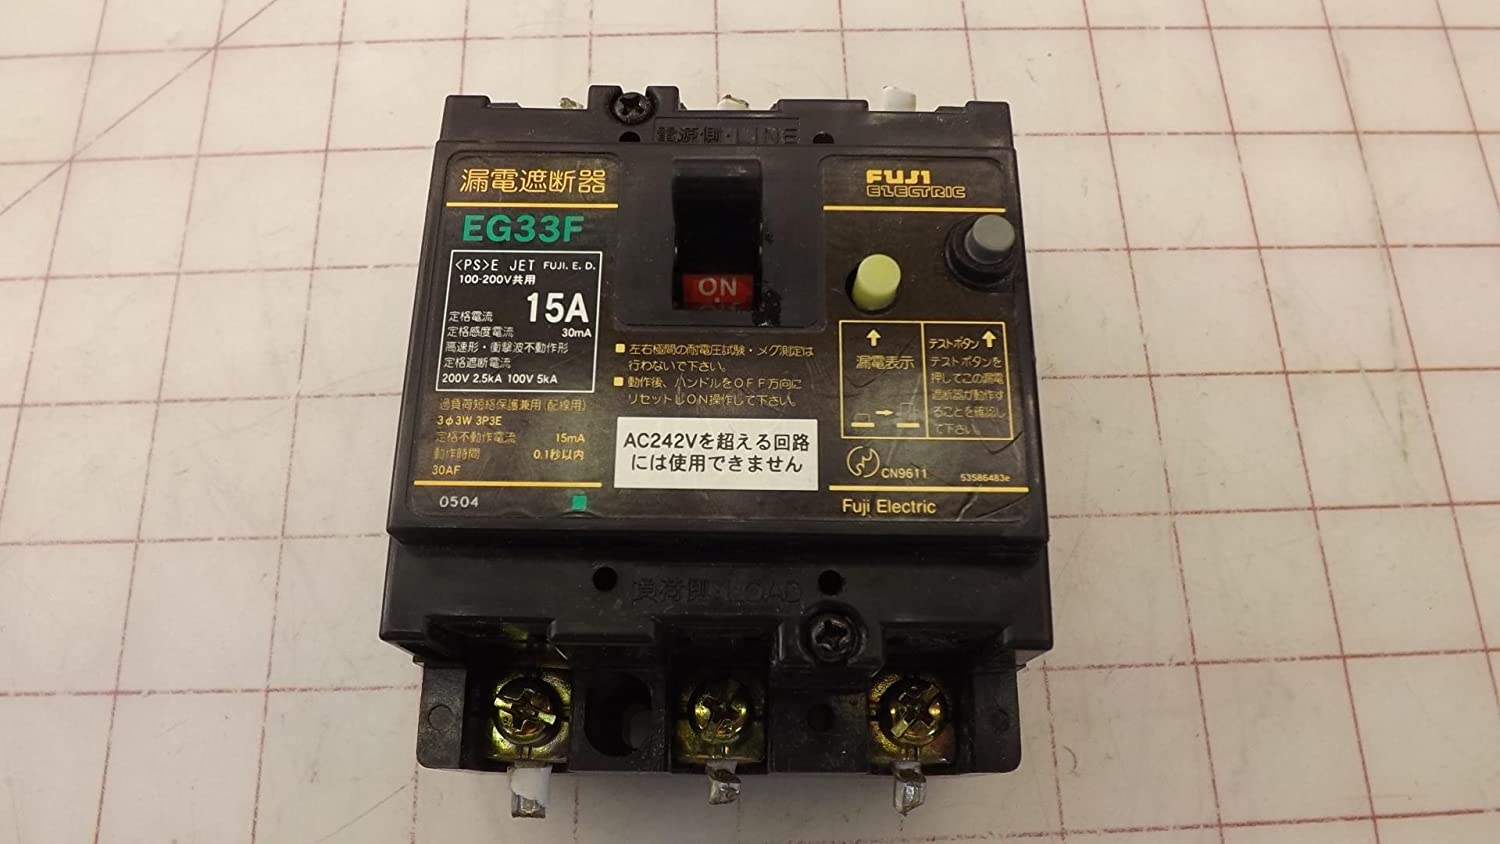 Fuji Electric EG33F Circuit Breaker T141026